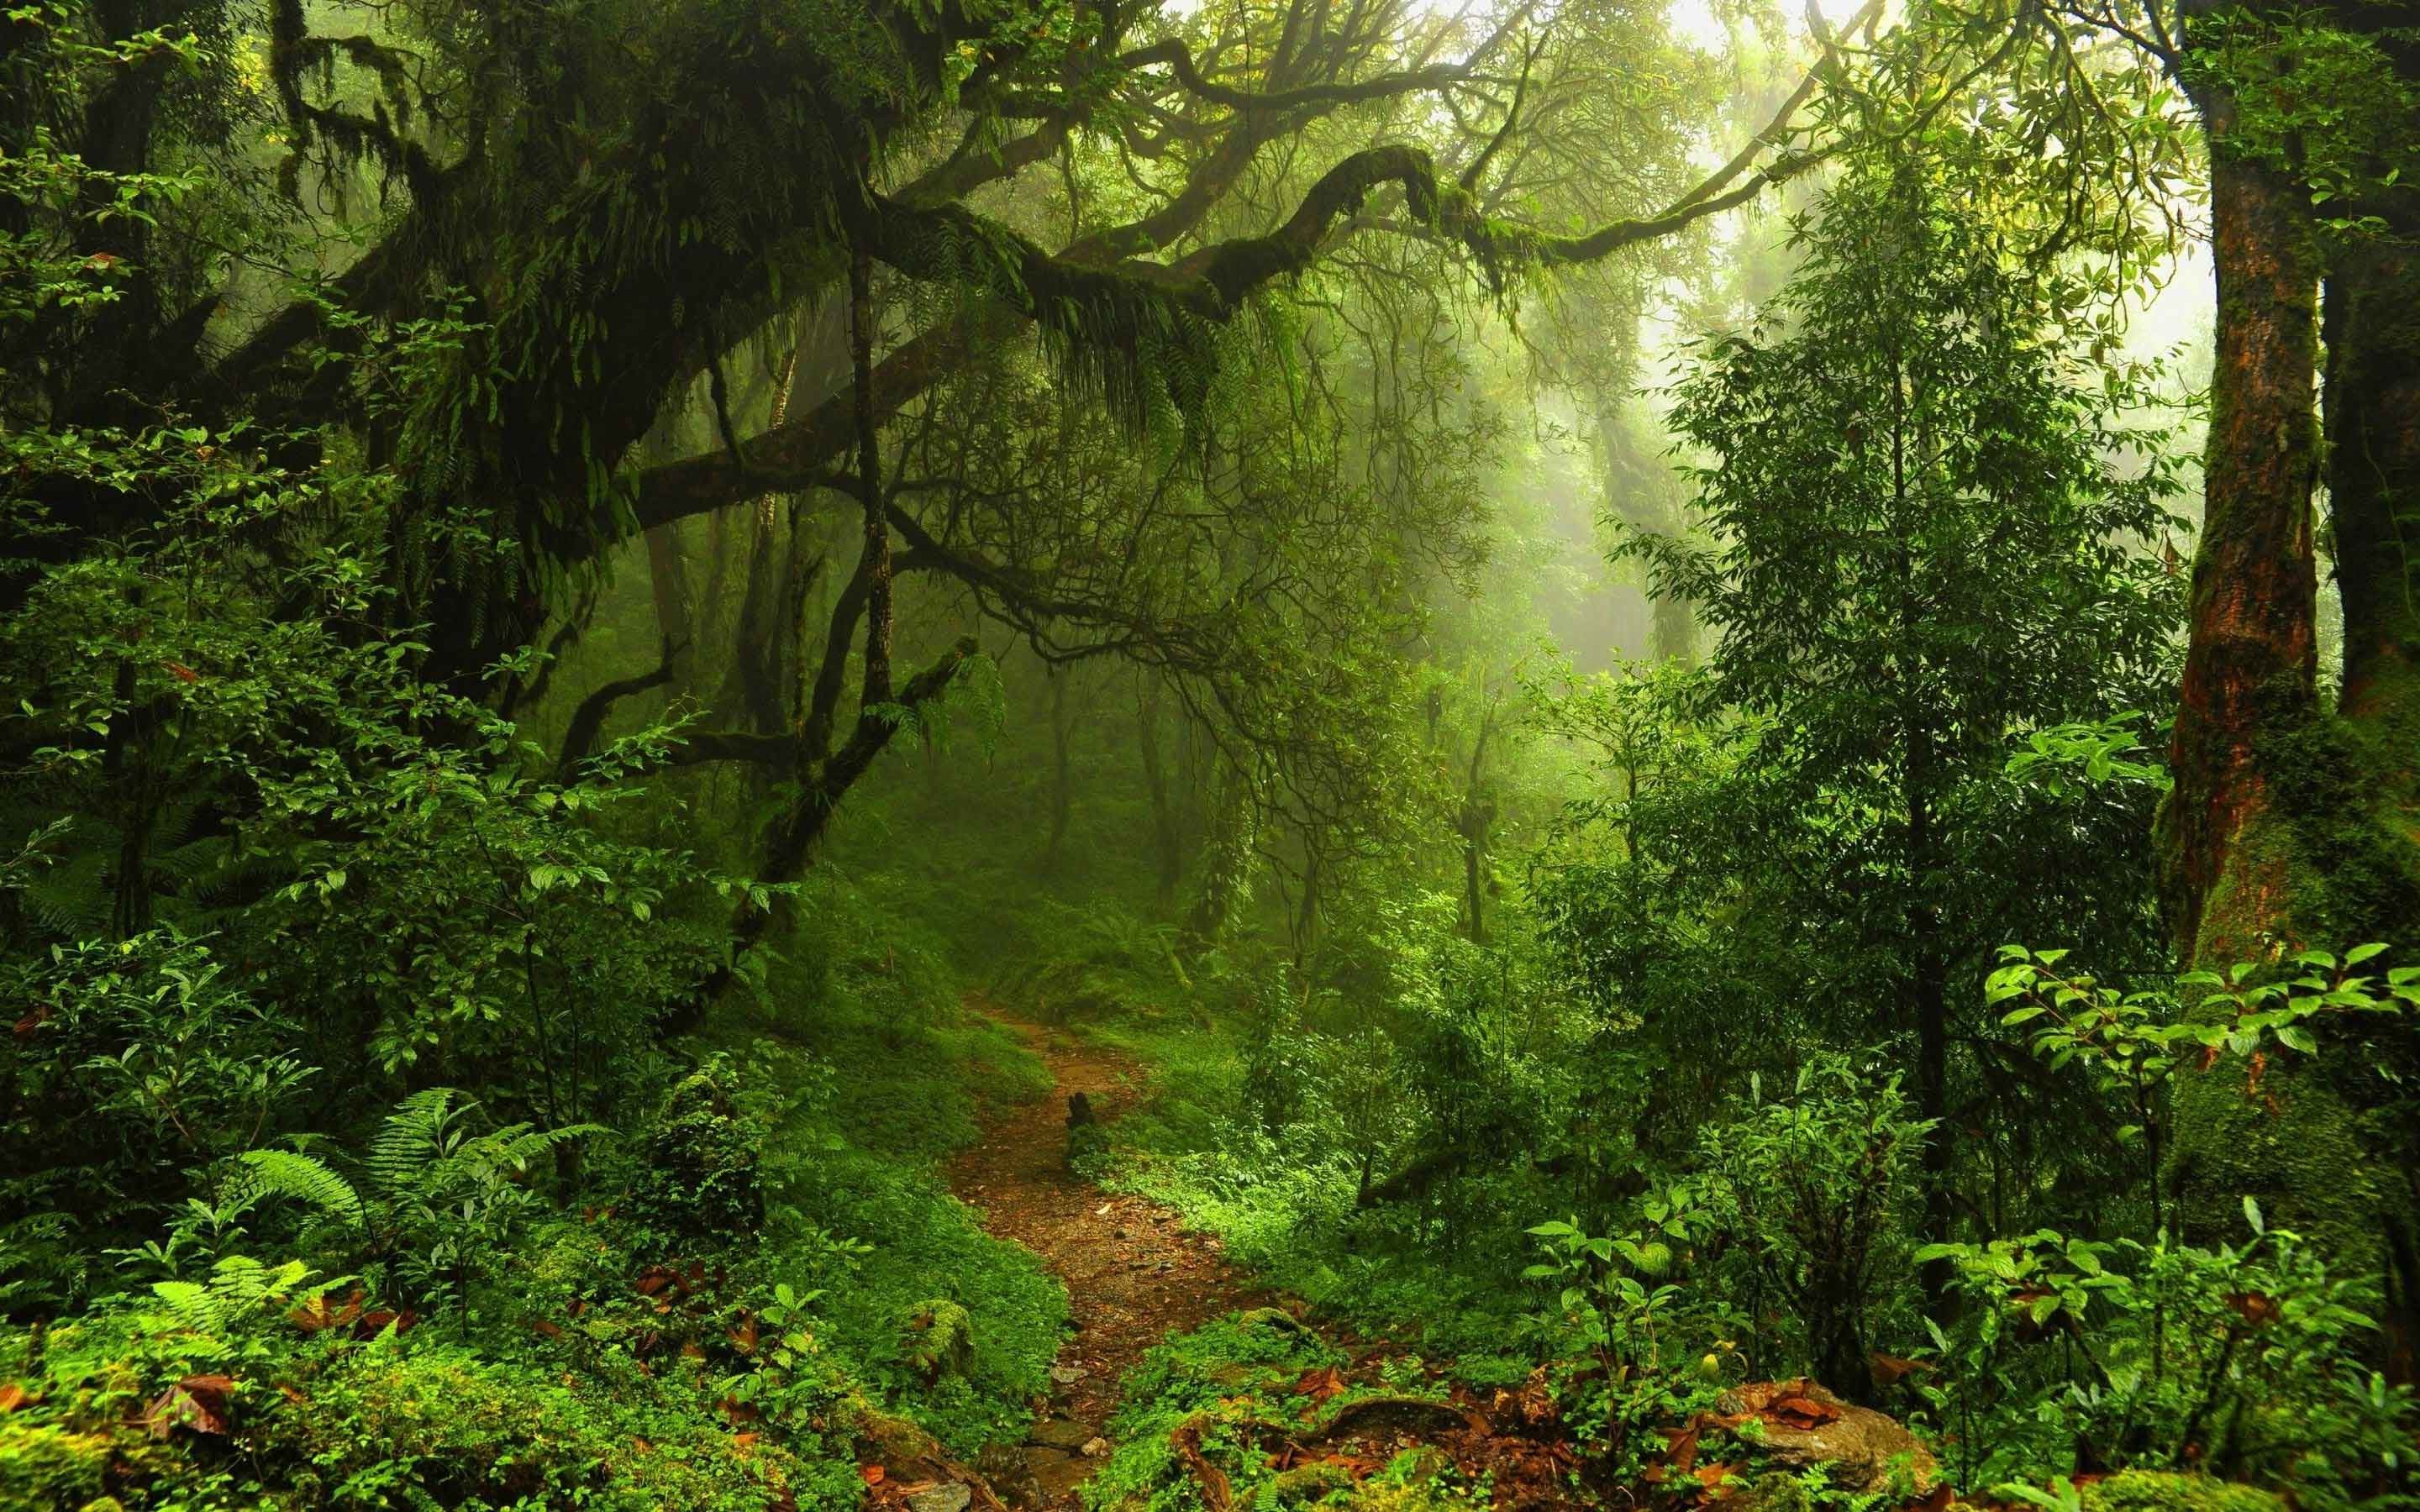 Rainforest wallpaper 61 images - Amazon wallpaper hd ...